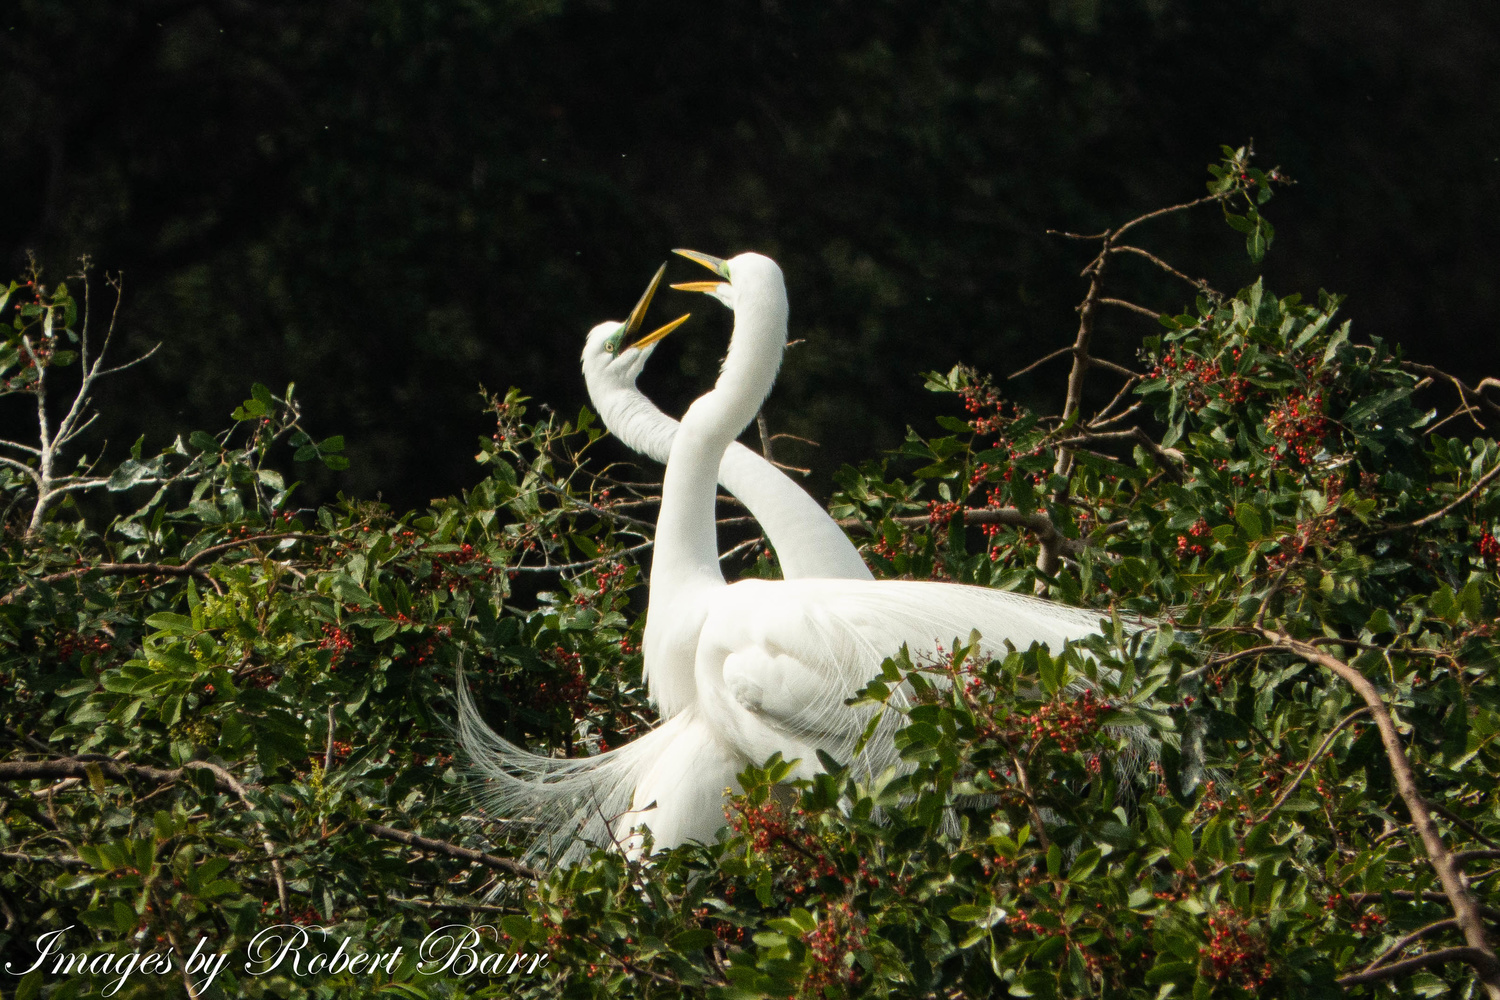 Honey I'm Home - 2 Great Egrets celebrating the return of a mate by Robert Barr